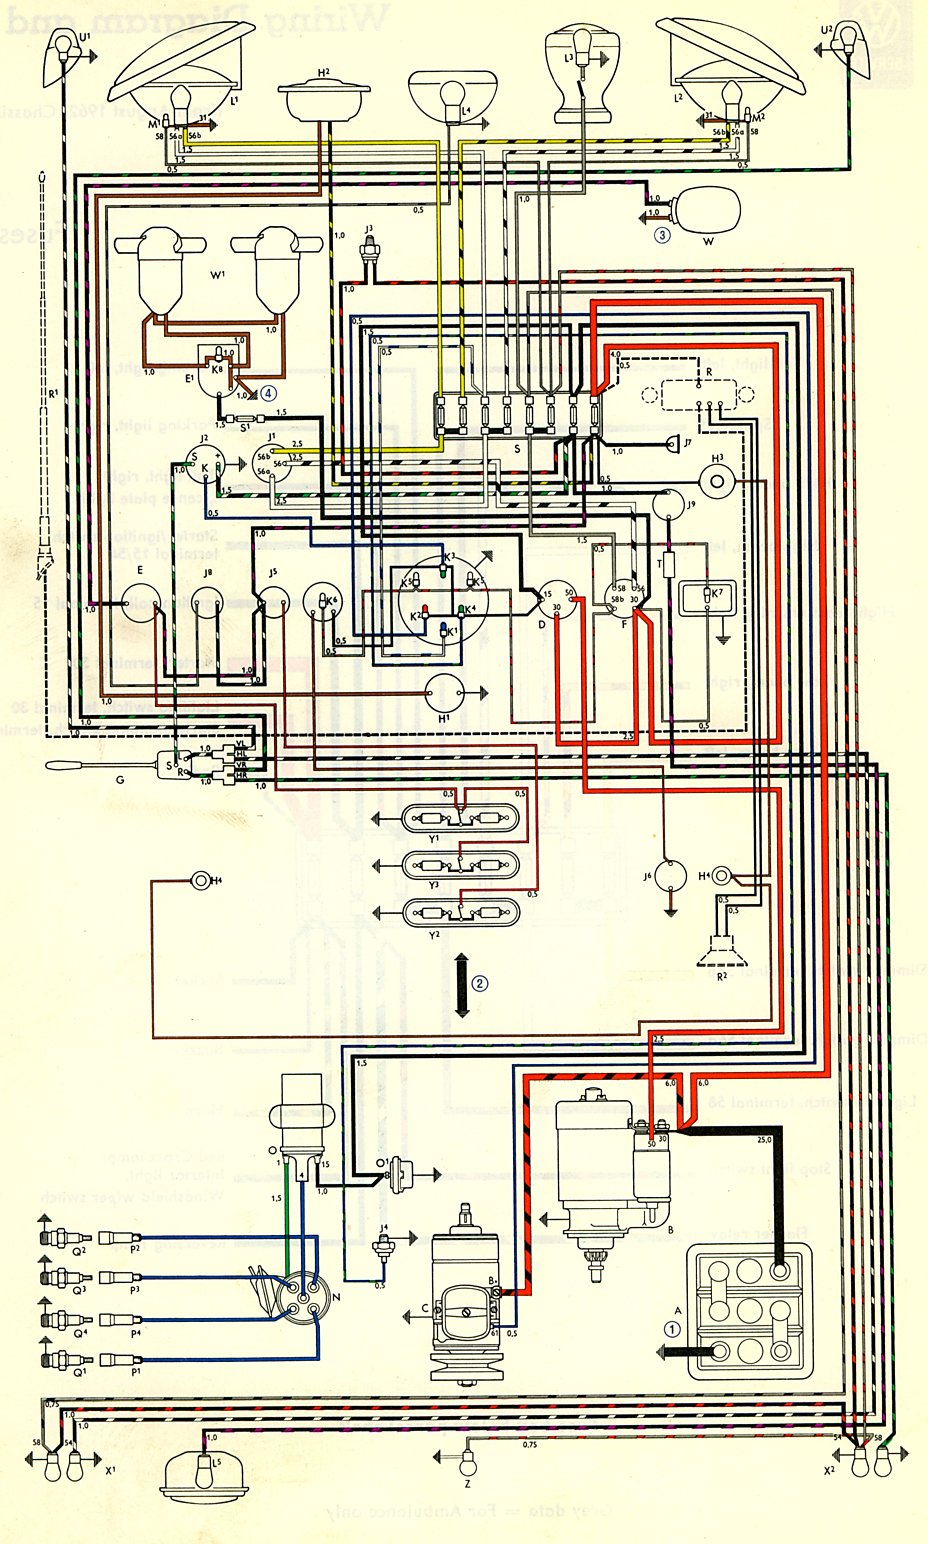 wiring 1967 diagram vw beetle ignition wiring diagram1967 vw bus fuse box wiring diagramswiring 1967 diagram vw beetle ignition wiring diagramsvw beetle wiring